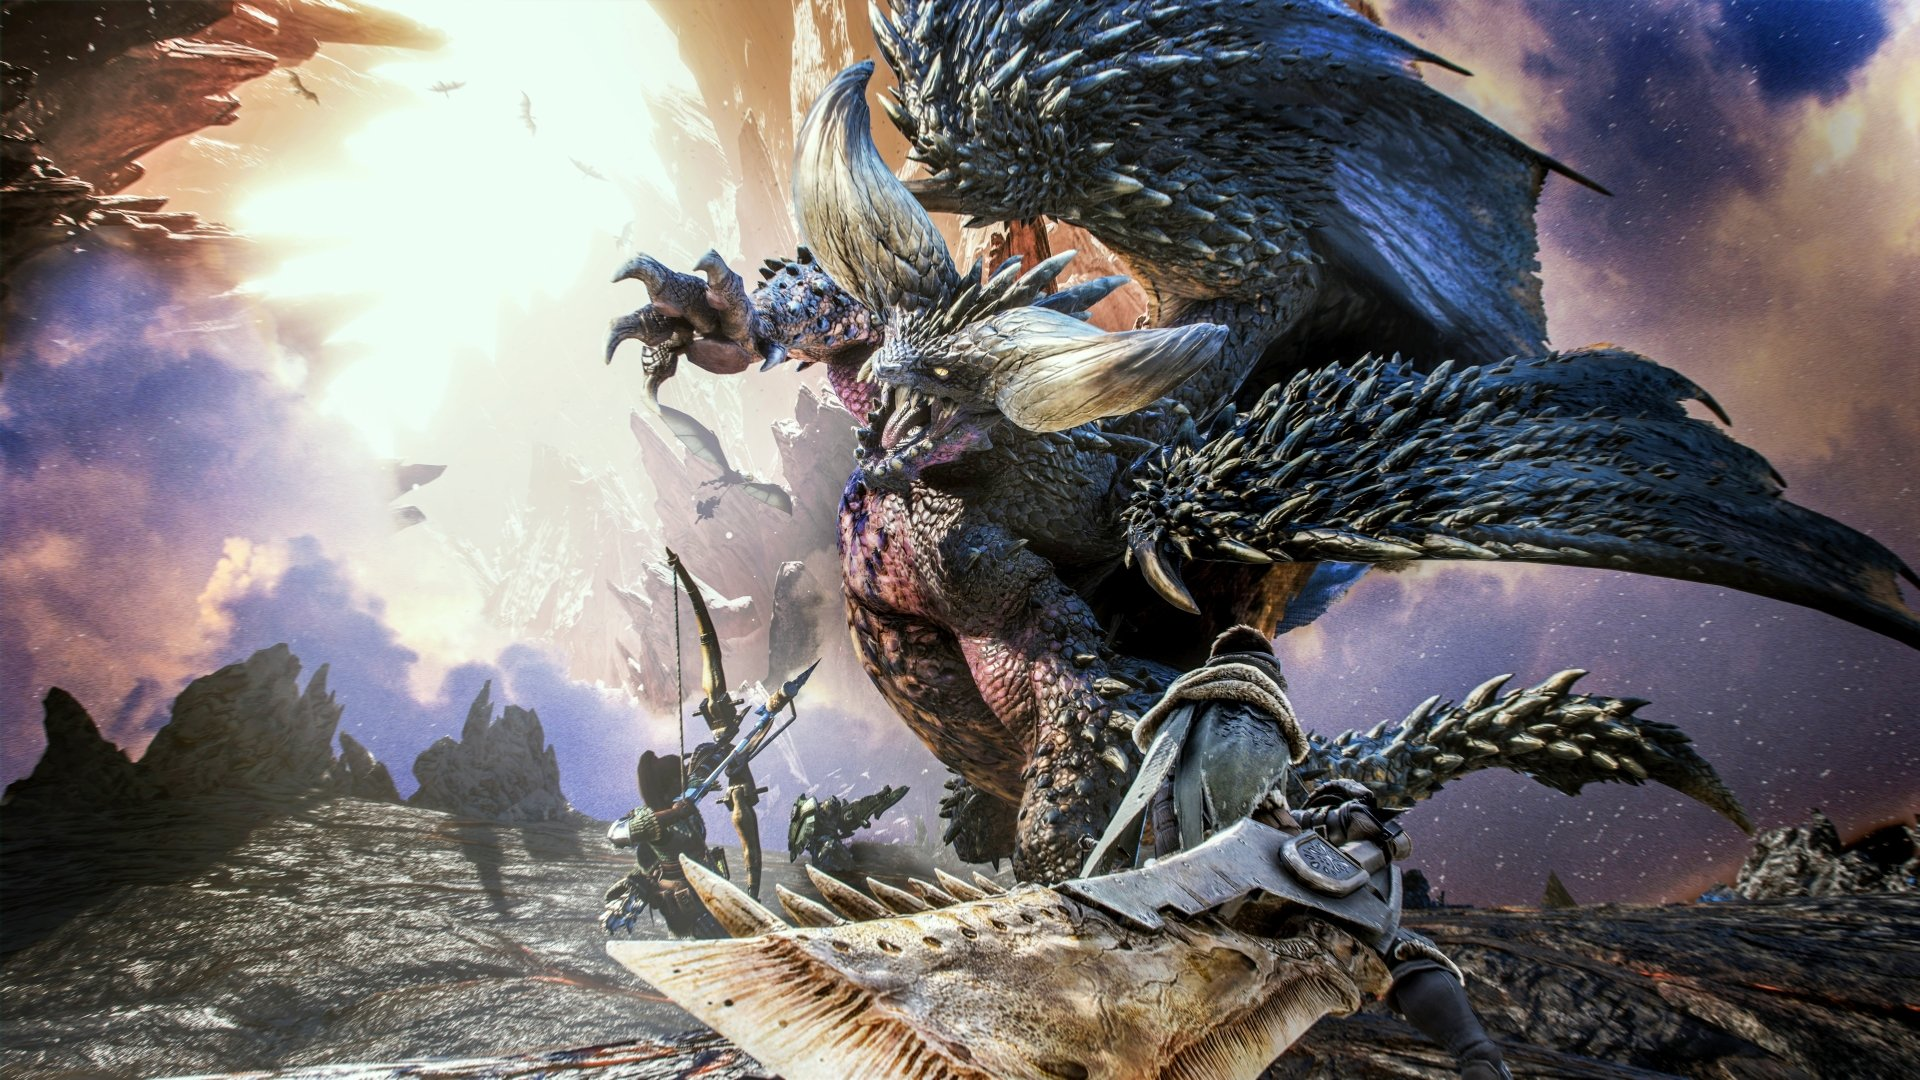 Monster Hunter World HD Wallpaper k Iphone Android p